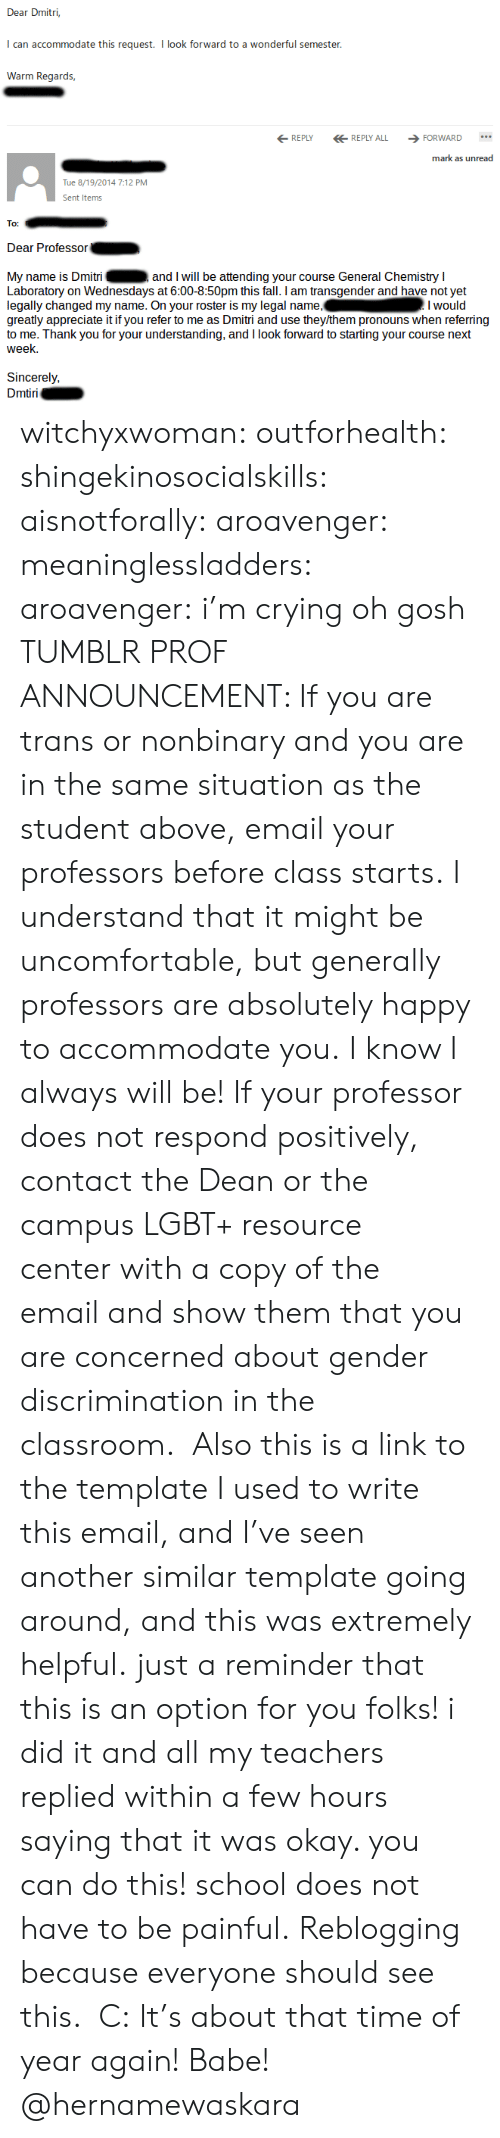 in the classroom: Dear Dmitri,  can accommodate this request. I look forward to a wonderful semester  Wann Reak  REPLYREPLY ALL FORWARD  mark as unread  Tue 8/19/2014 7:12 PM  Sent Item  To:  Dear Professor  My name is Dmitri  Laboratory on Wednesdays at 6:00-8:50pm this fall. I am transgender and have not yet  legally changed my name. On your roster is my legal name,Iwould  greatly appreciate it if you refer to me as Dmitri and use they/them pronouns when referring  to me. Thank you for your understanding, and I look forward to starting your course next  week.  and I will be attending your course General Chemistry I  Sincerely,  iri witchyxwoman:  outforhealth: shingekinosocialskills:  aisnotforally:  aroavenger:  meaninglessladders:  aroavenger:  i'm crying oh gosh  TUMBLR PROF ANNOUNCEMENT: If you are trans or nonbinary and you are in the same situation as the student above,email your professors before class starts.I understand that it might be uncomfortable, but generally professors are absolutely happy to accommodate you.I know I always will be! If your professor does not respond positively, contact the Dean or the campus LGBT+ resource centerwith a copy of the emailand show them that you are concerned about gender discrimination in the classroom.  Also this is a link to the template I used to write this email, and I've seen another similar template going around, and this was extremely helpful.  just a reminder that this is an option for you folks! i did it and all my teachers replied within a few hours saying that it was okay. you can do this! school does not have to be painful.   Reblogging because everyone should see this. C:  It's about that time of year again!   Babe! @hernamewaskara